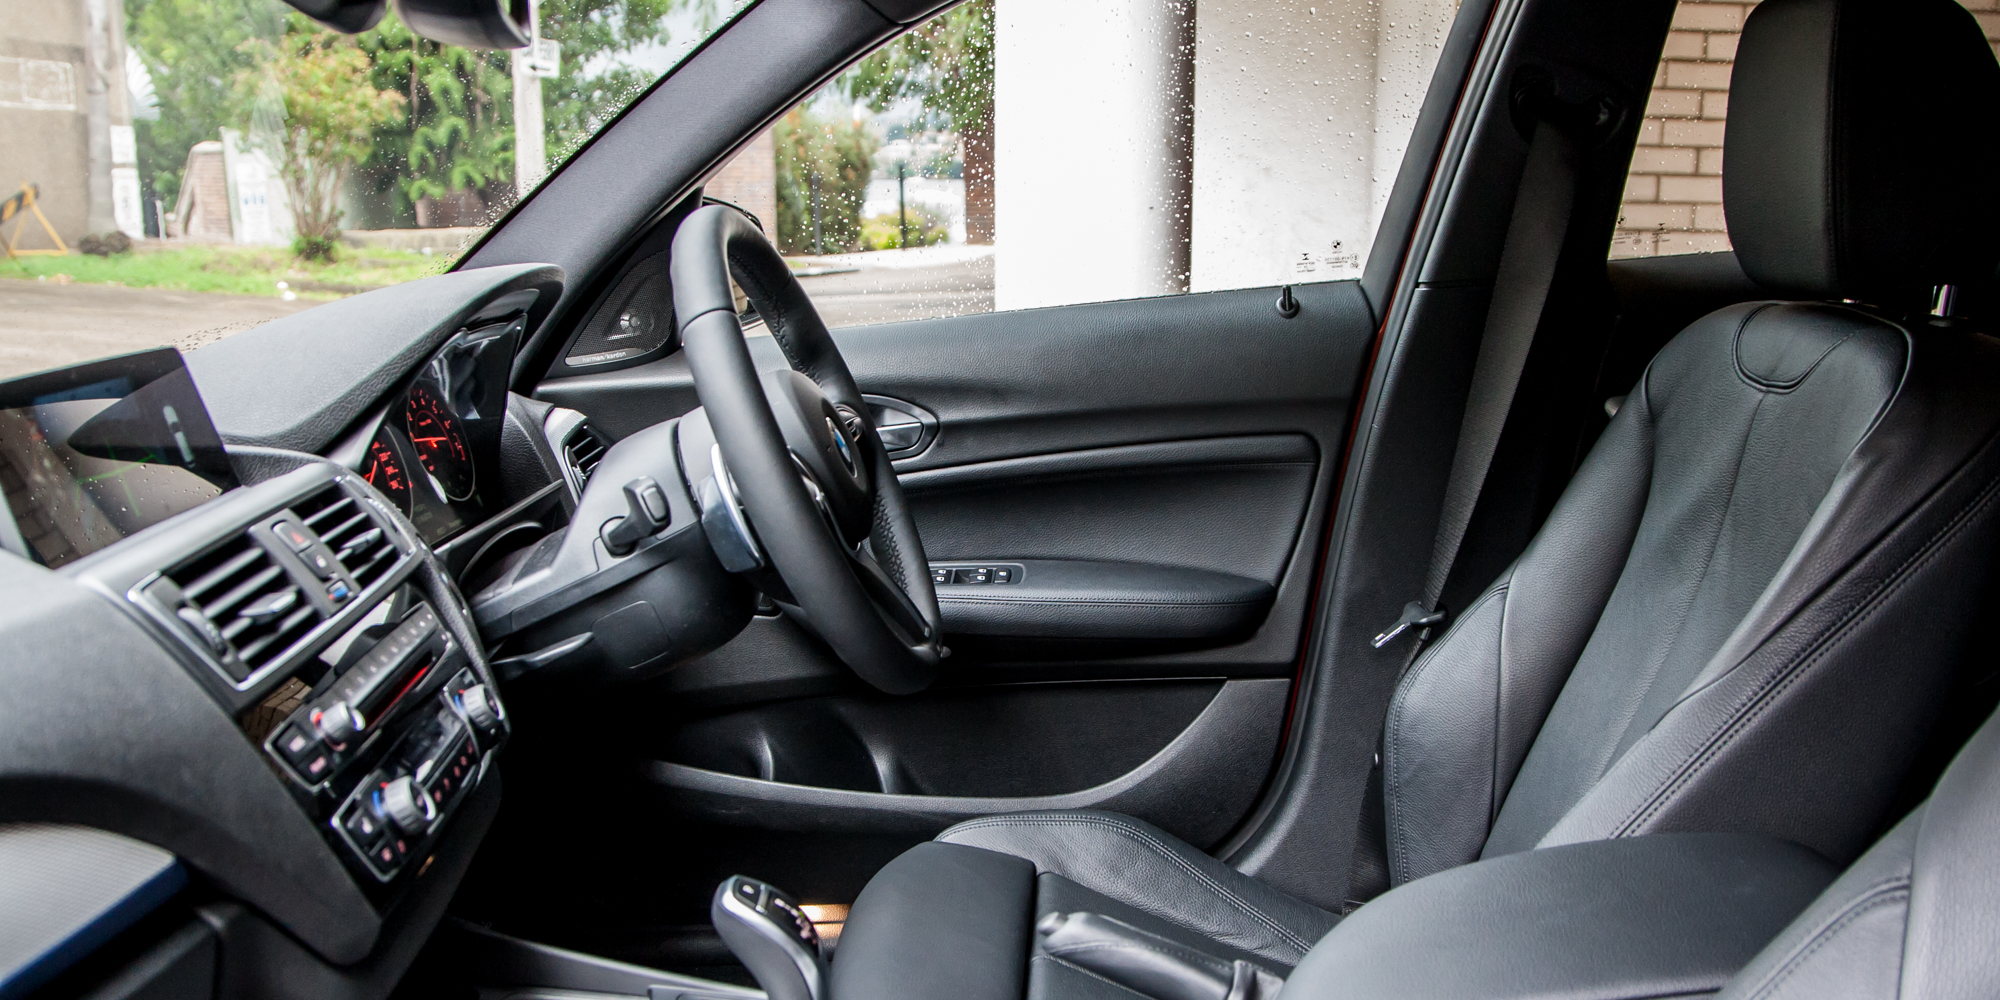 2015 BMW 125i Cockpit Seat Interior